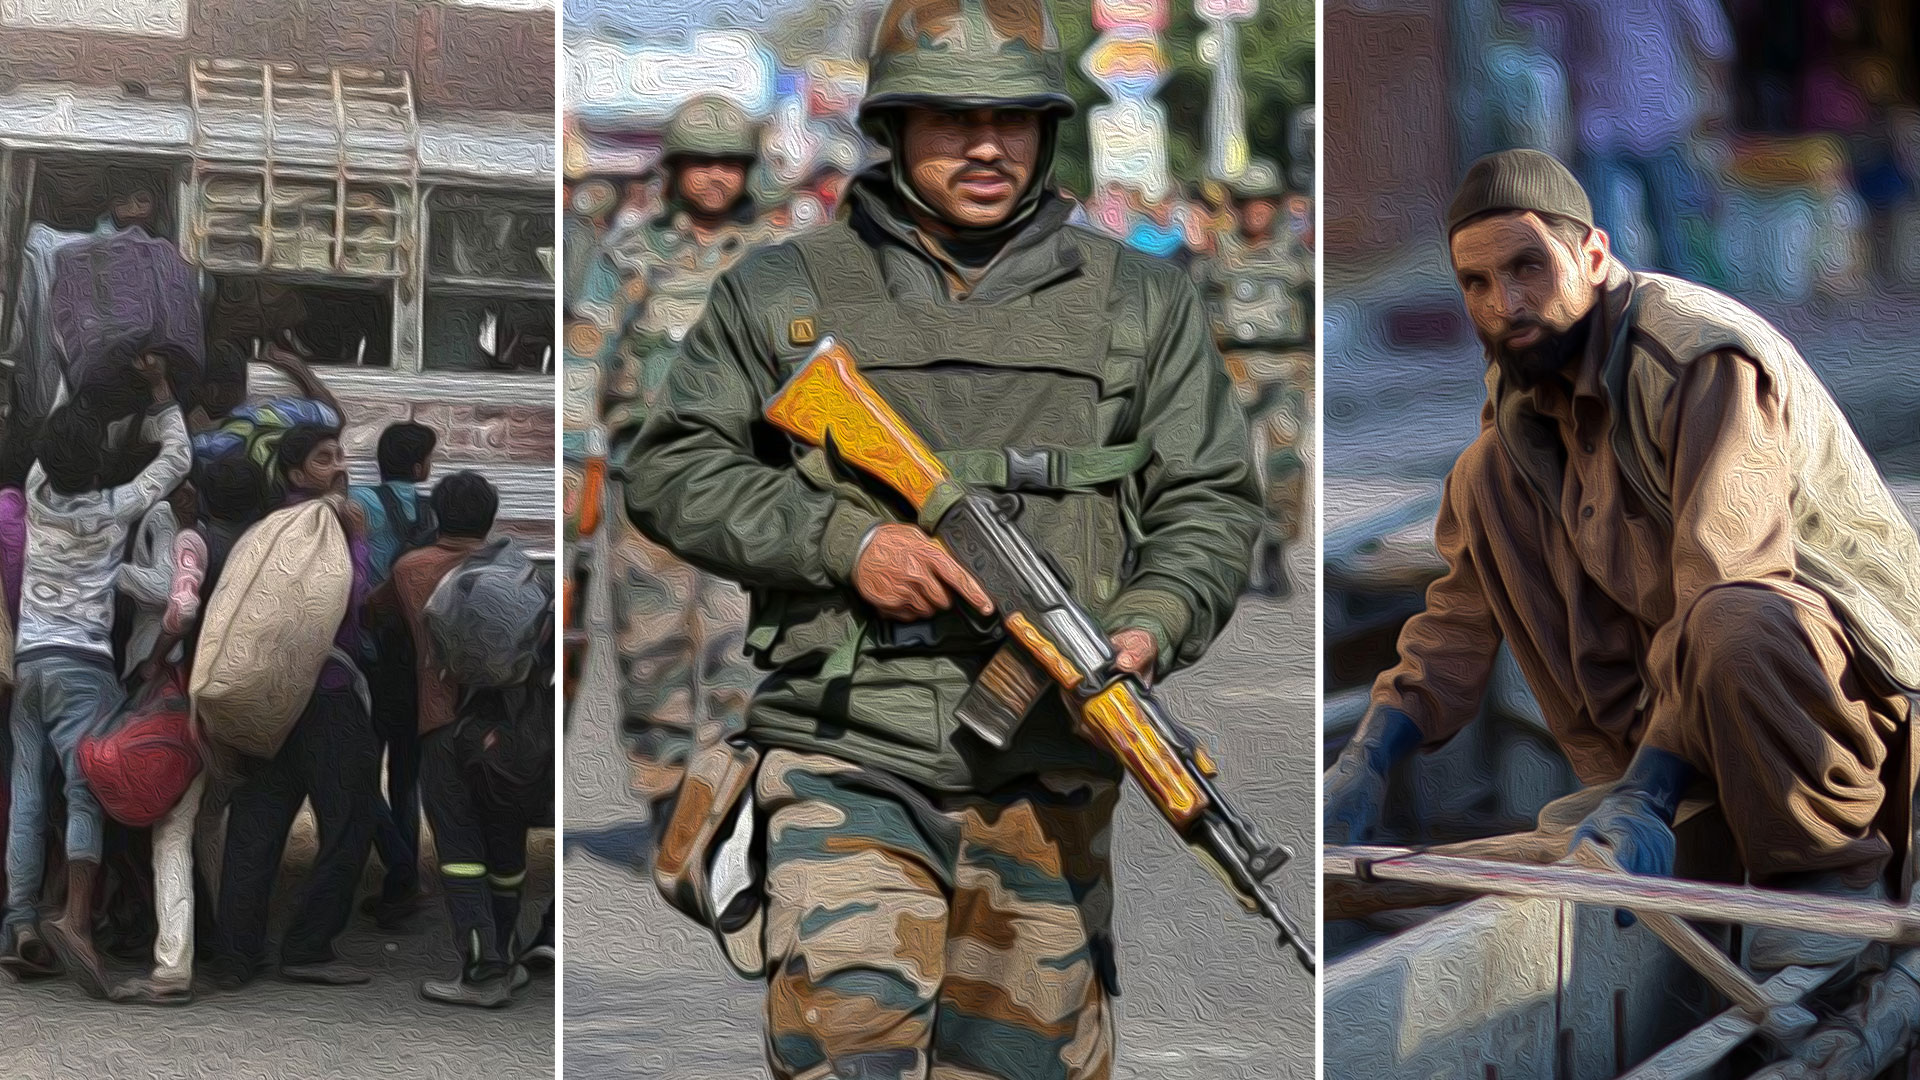 Kashmir workers under military siege and without Article 370